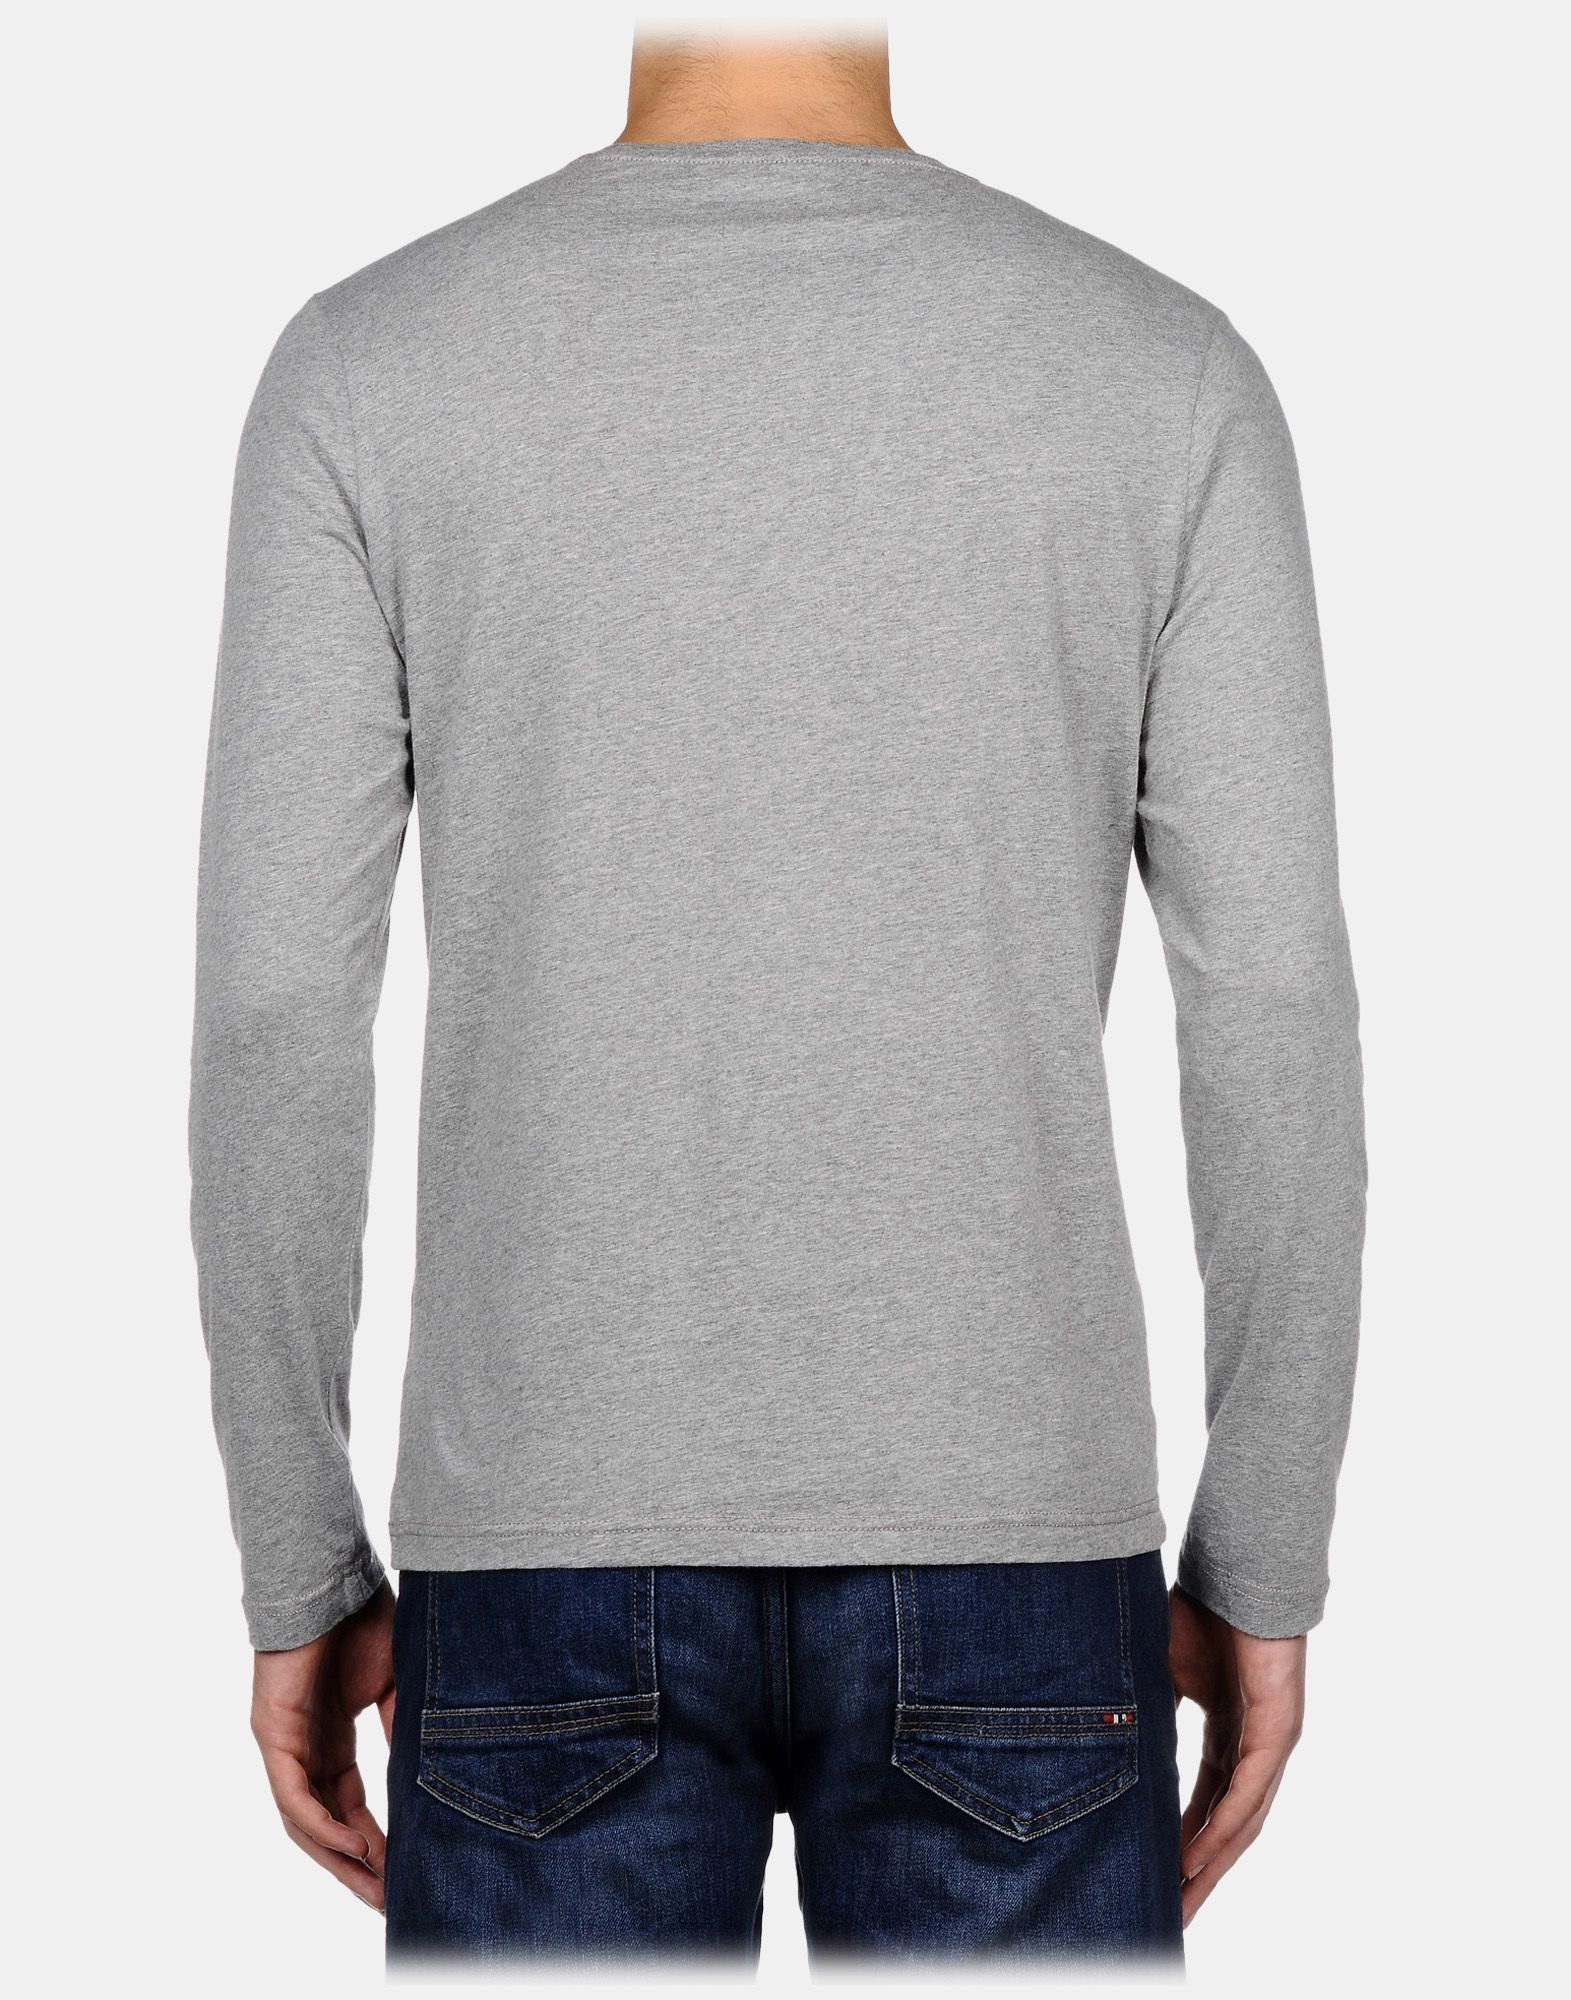 Grey Long Sleeve T Shirt